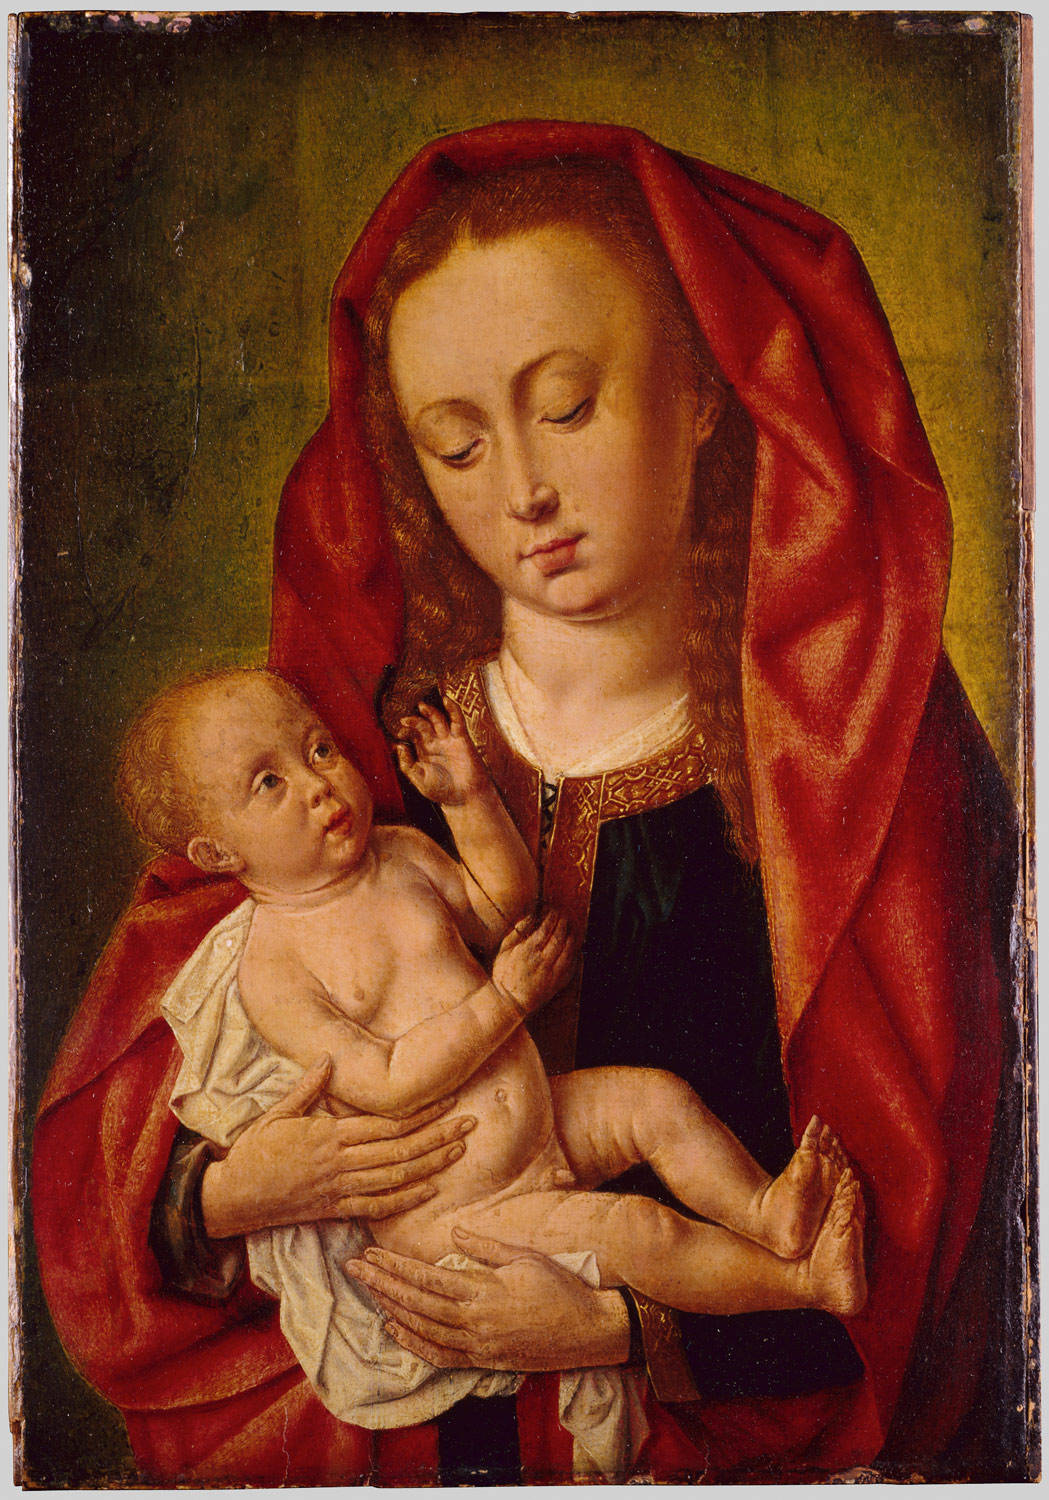 Virgin and Child with a Dragonfly